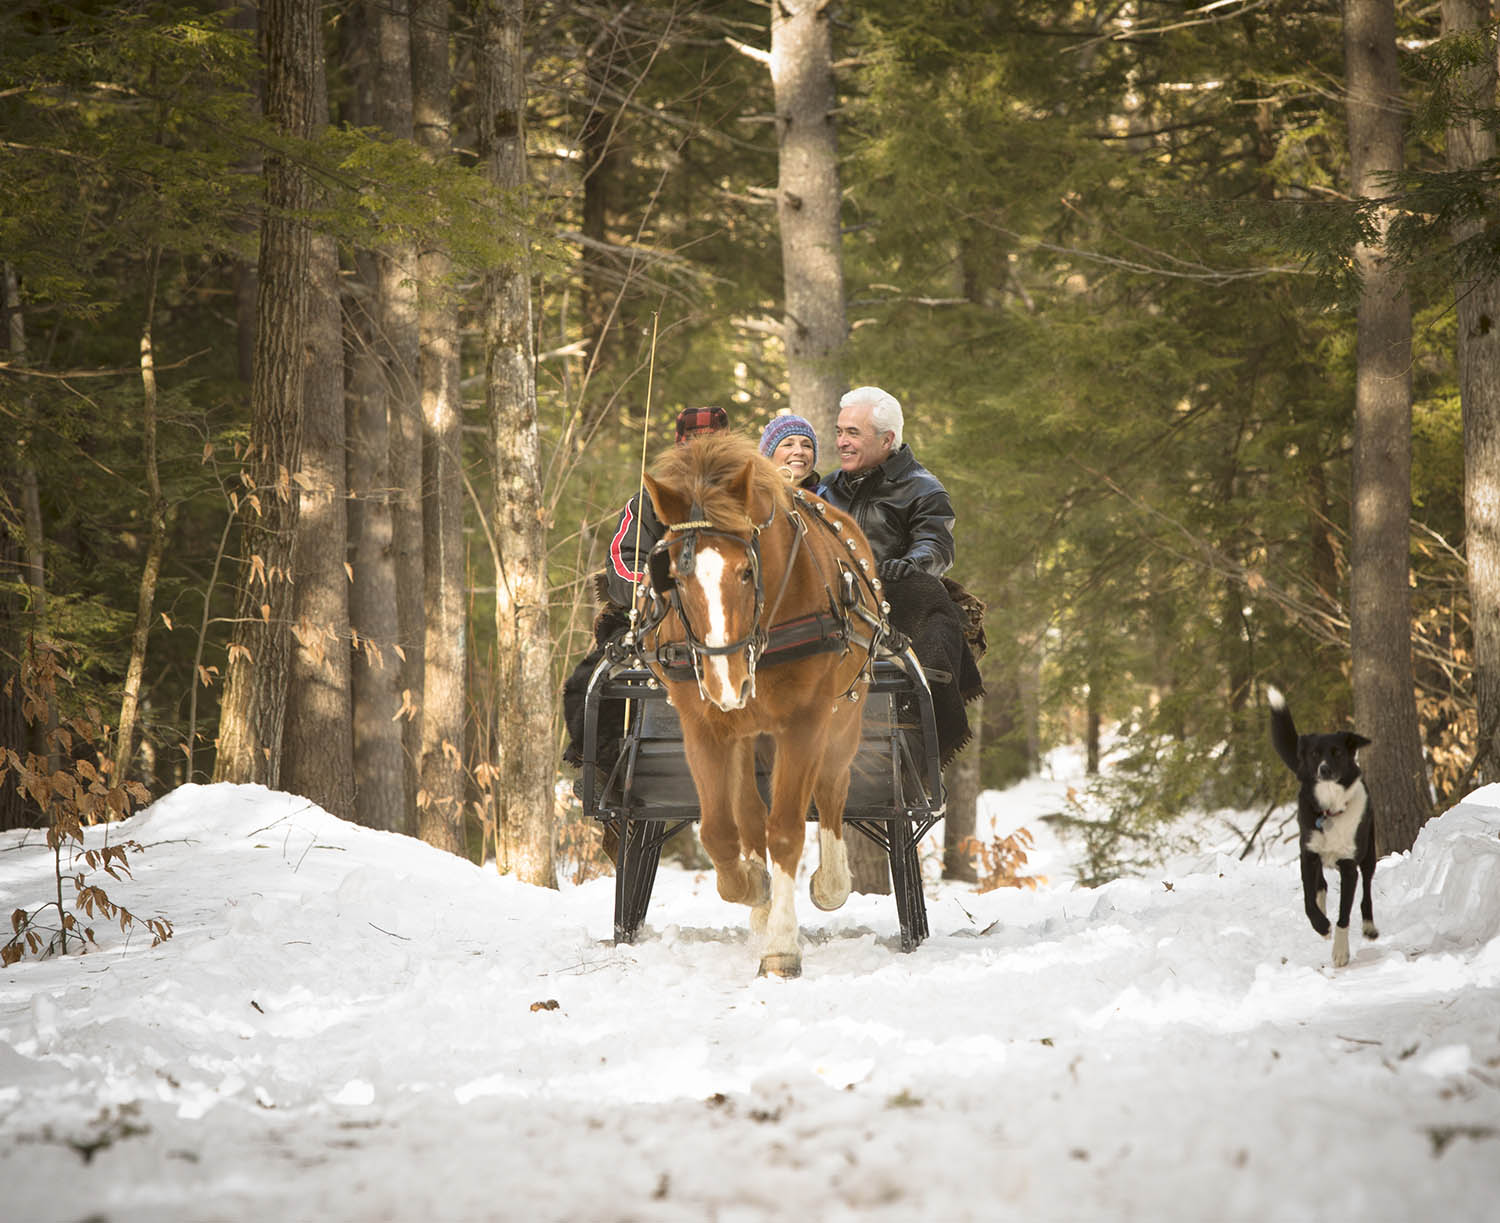 Horse drawn carriage with two people riding throught a snowy forest